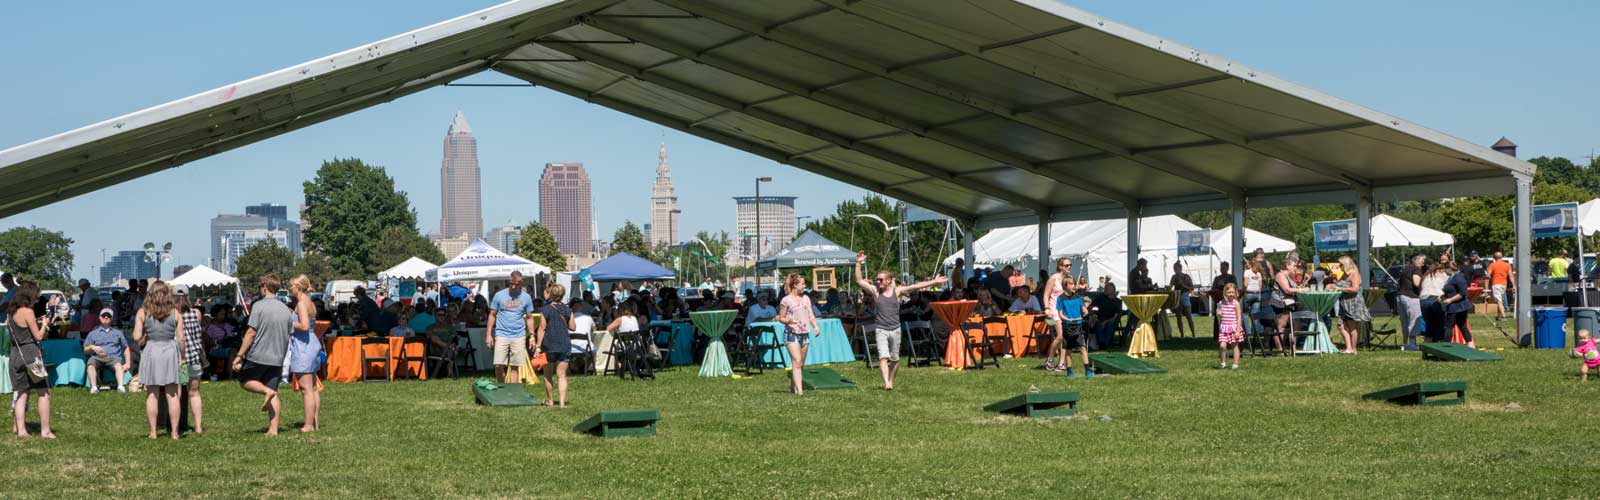 Cleveland Metroparks Taste on the Lake festival 2018 <span class='image-credits'>Bob Perkoski</span>